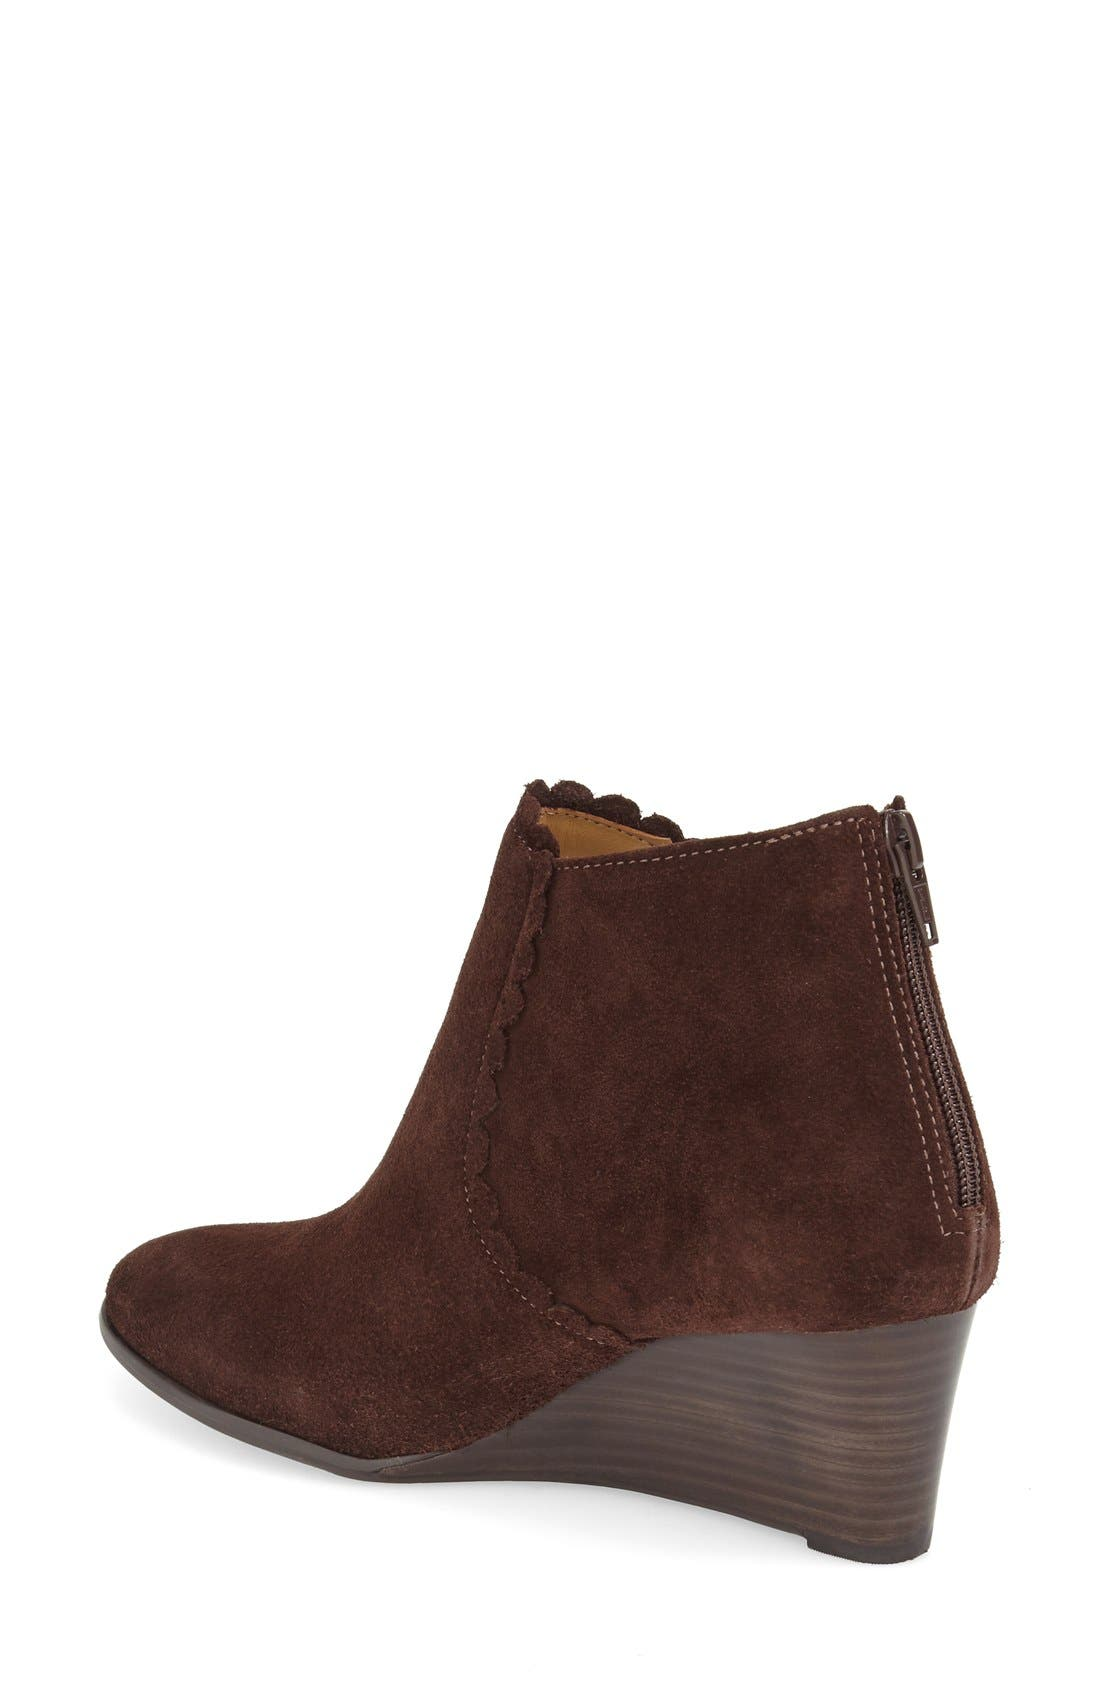 Alternate Image 2  - Jack Rogers 'Emery' Wedge Bootie (Women)